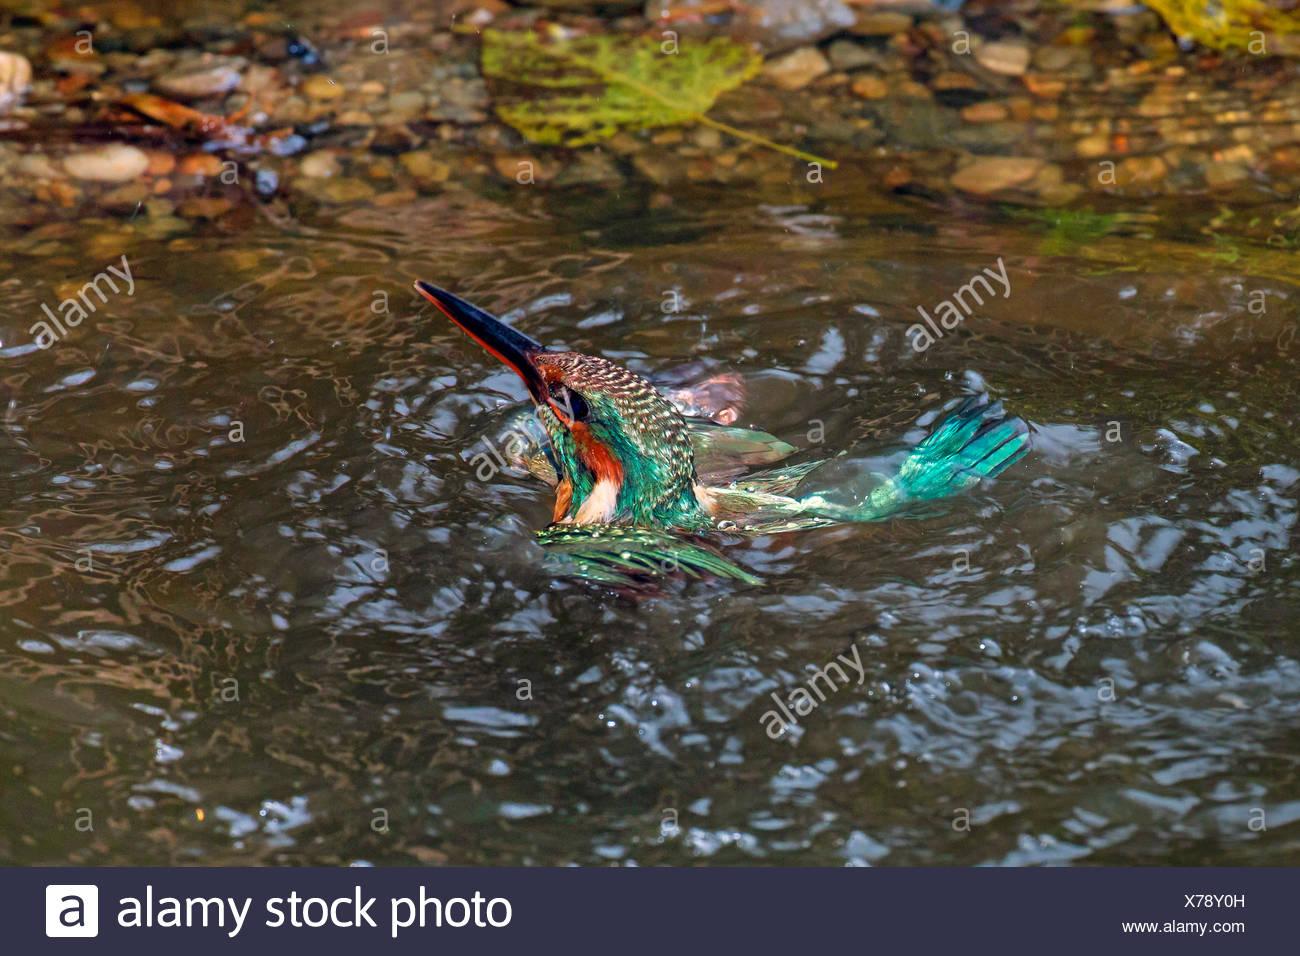 river kingfisher (Alcedo atthis), female swims after ineffective foray, Germany, Bavaria - Stock Image